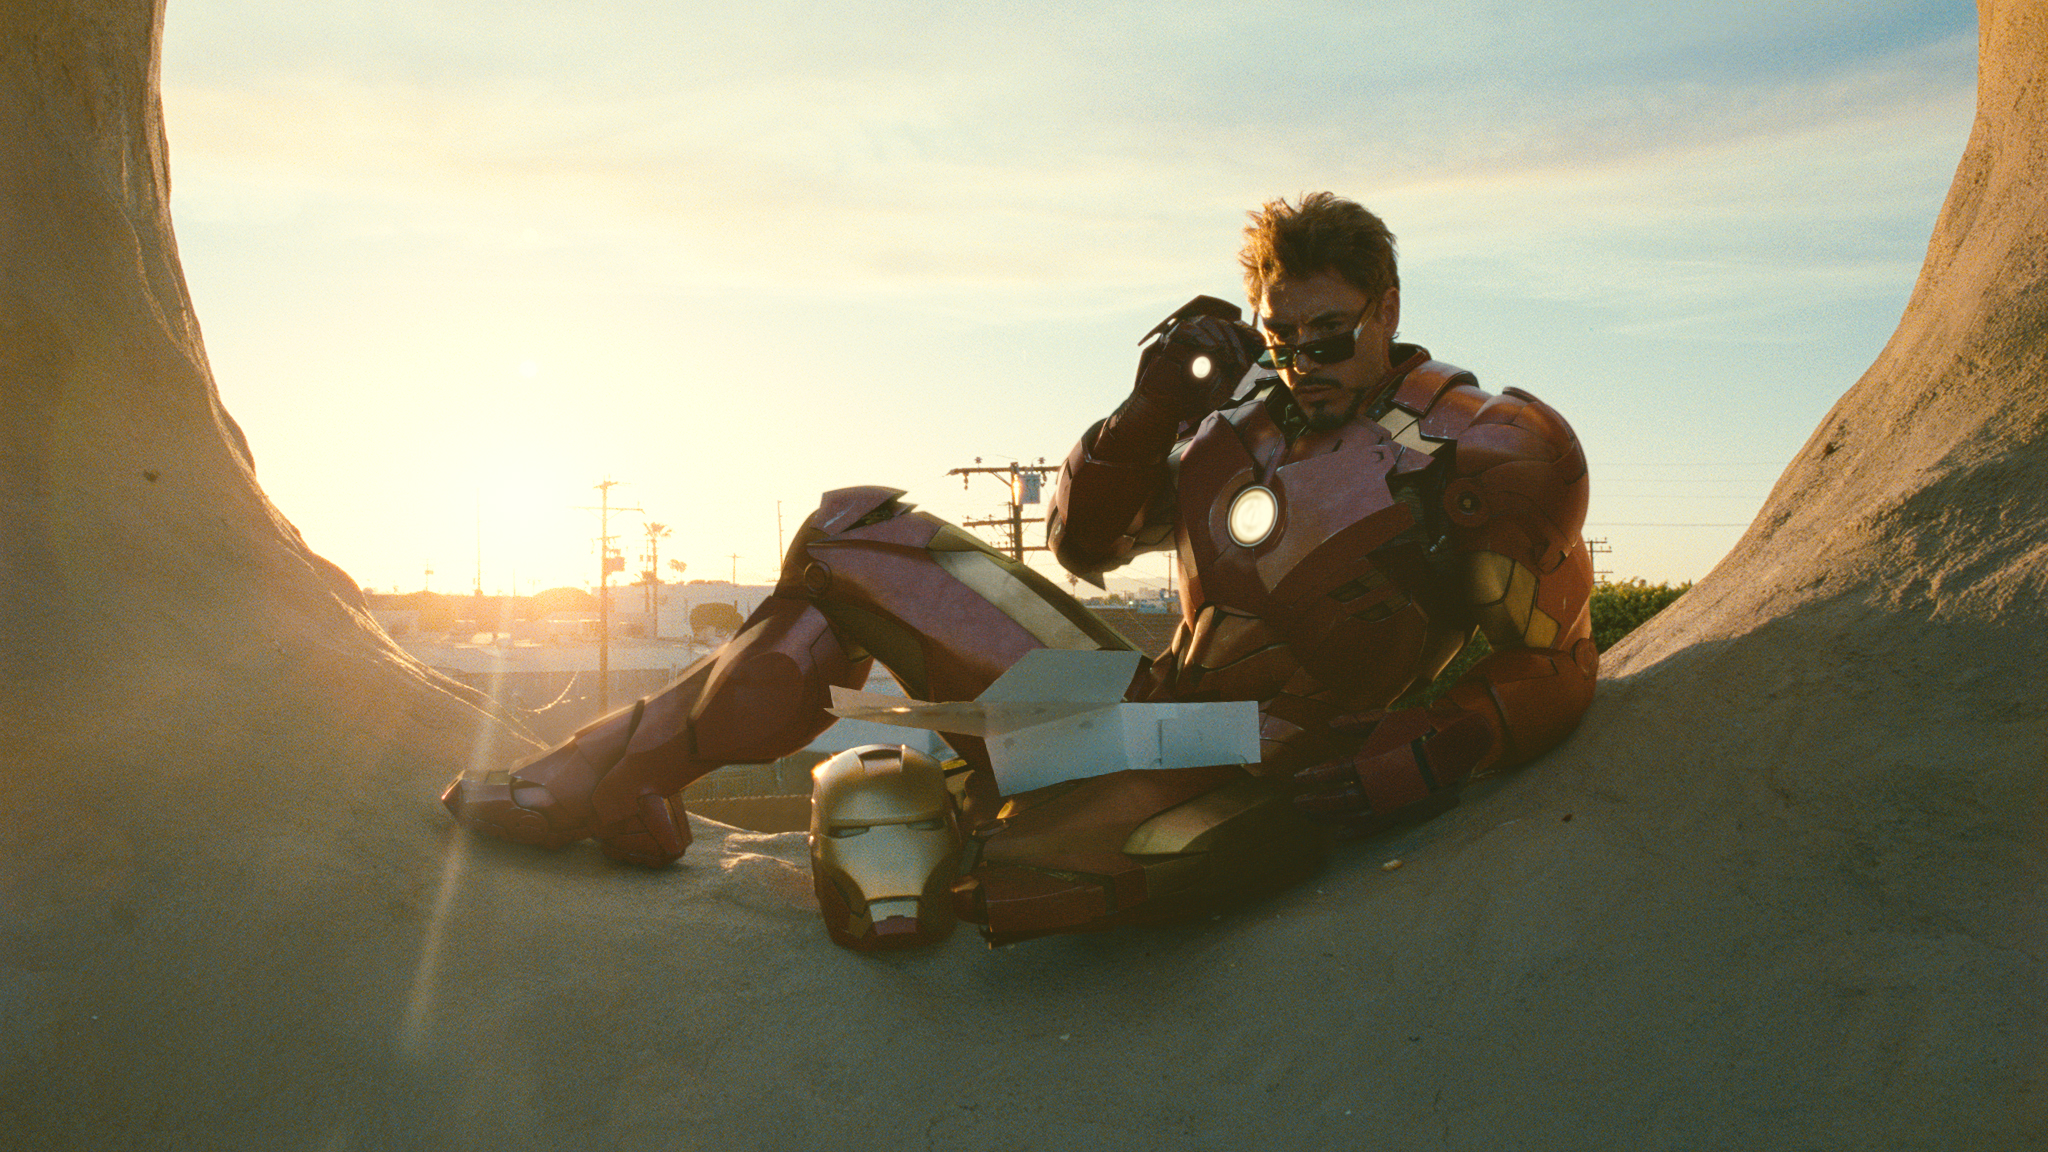 iron-man-2-movie-image-7